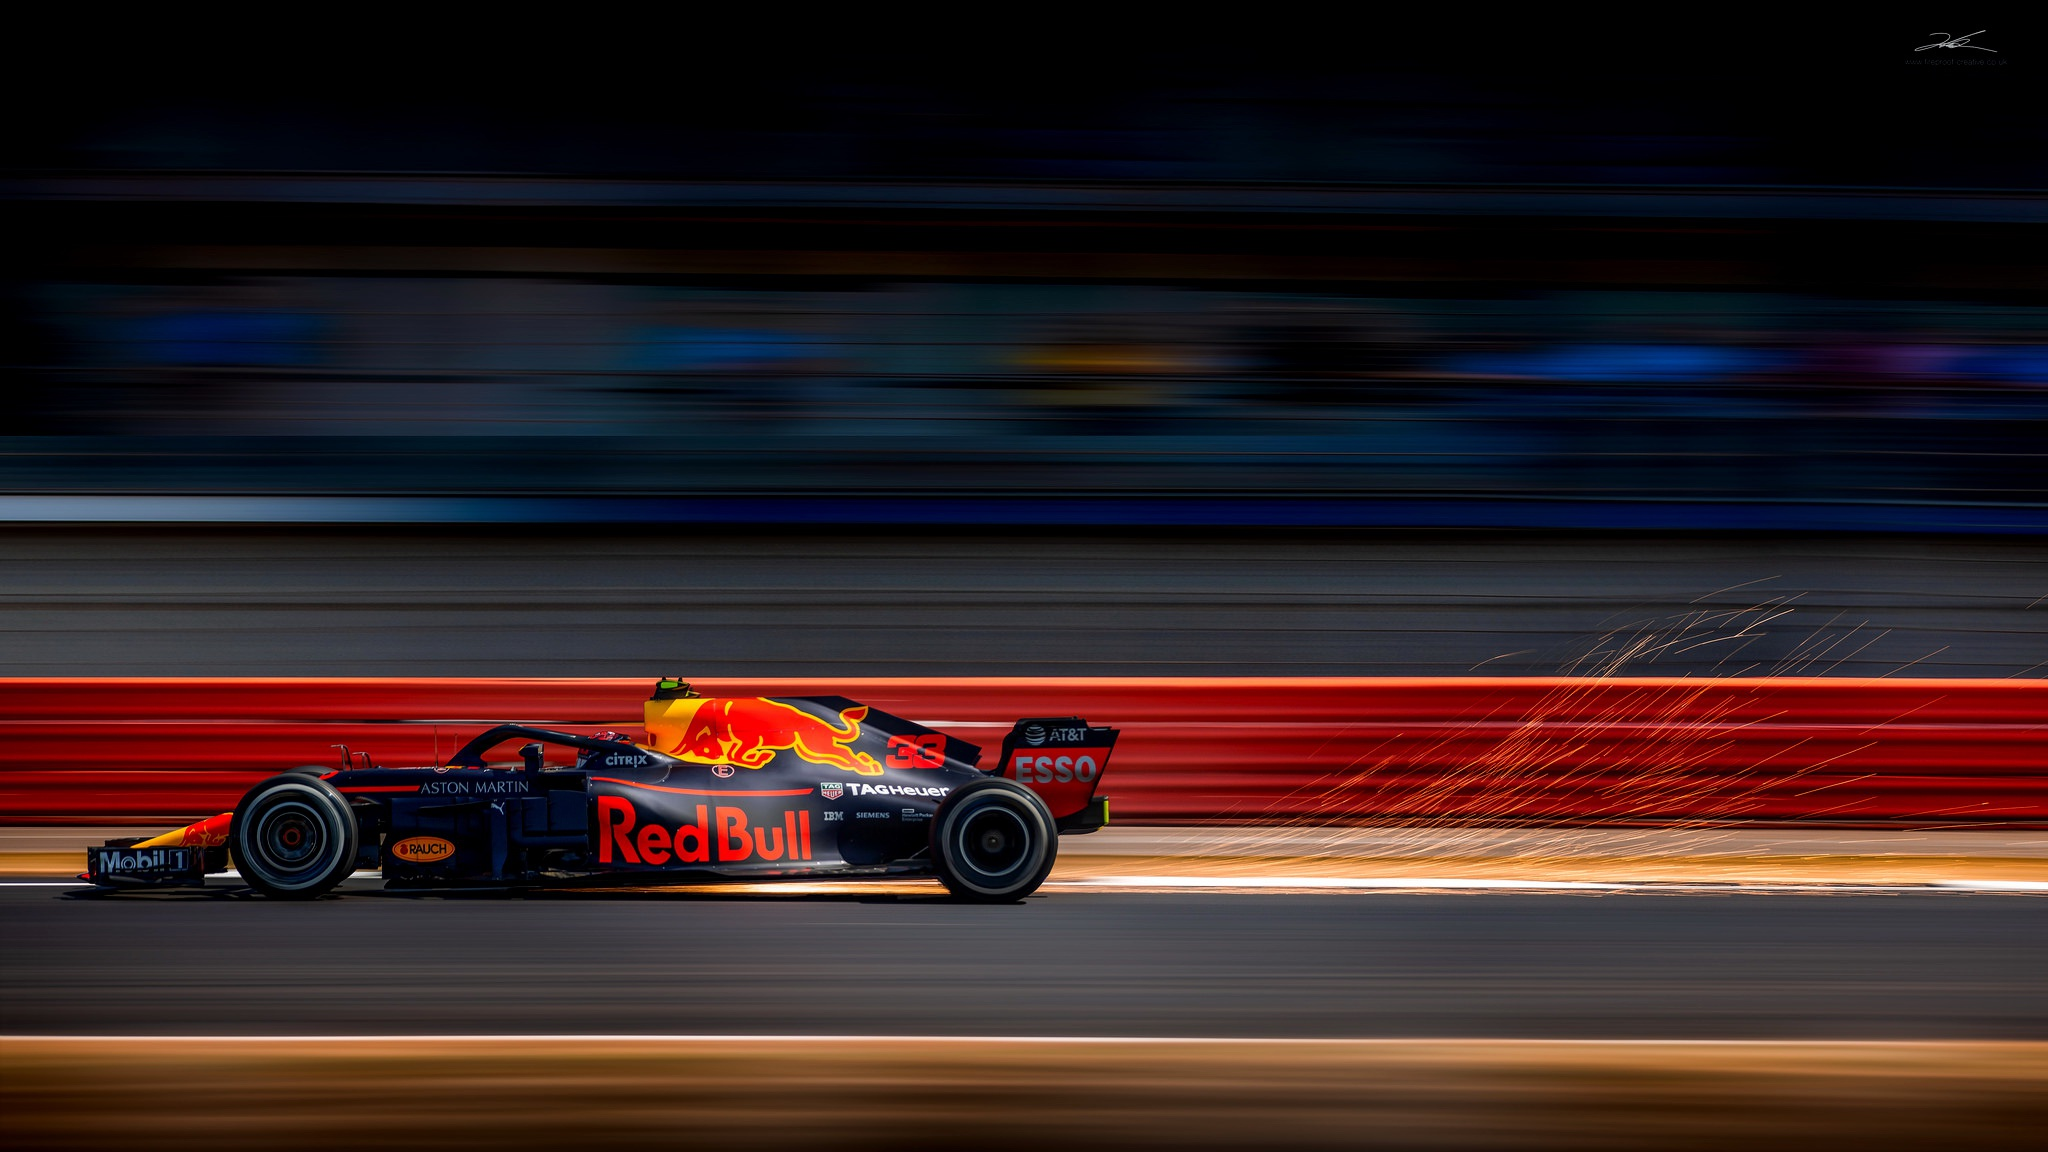 Red Bull Rb12 F1 Hd Cars 4k Wallpapers Images Backgrounds Photos And Pictures